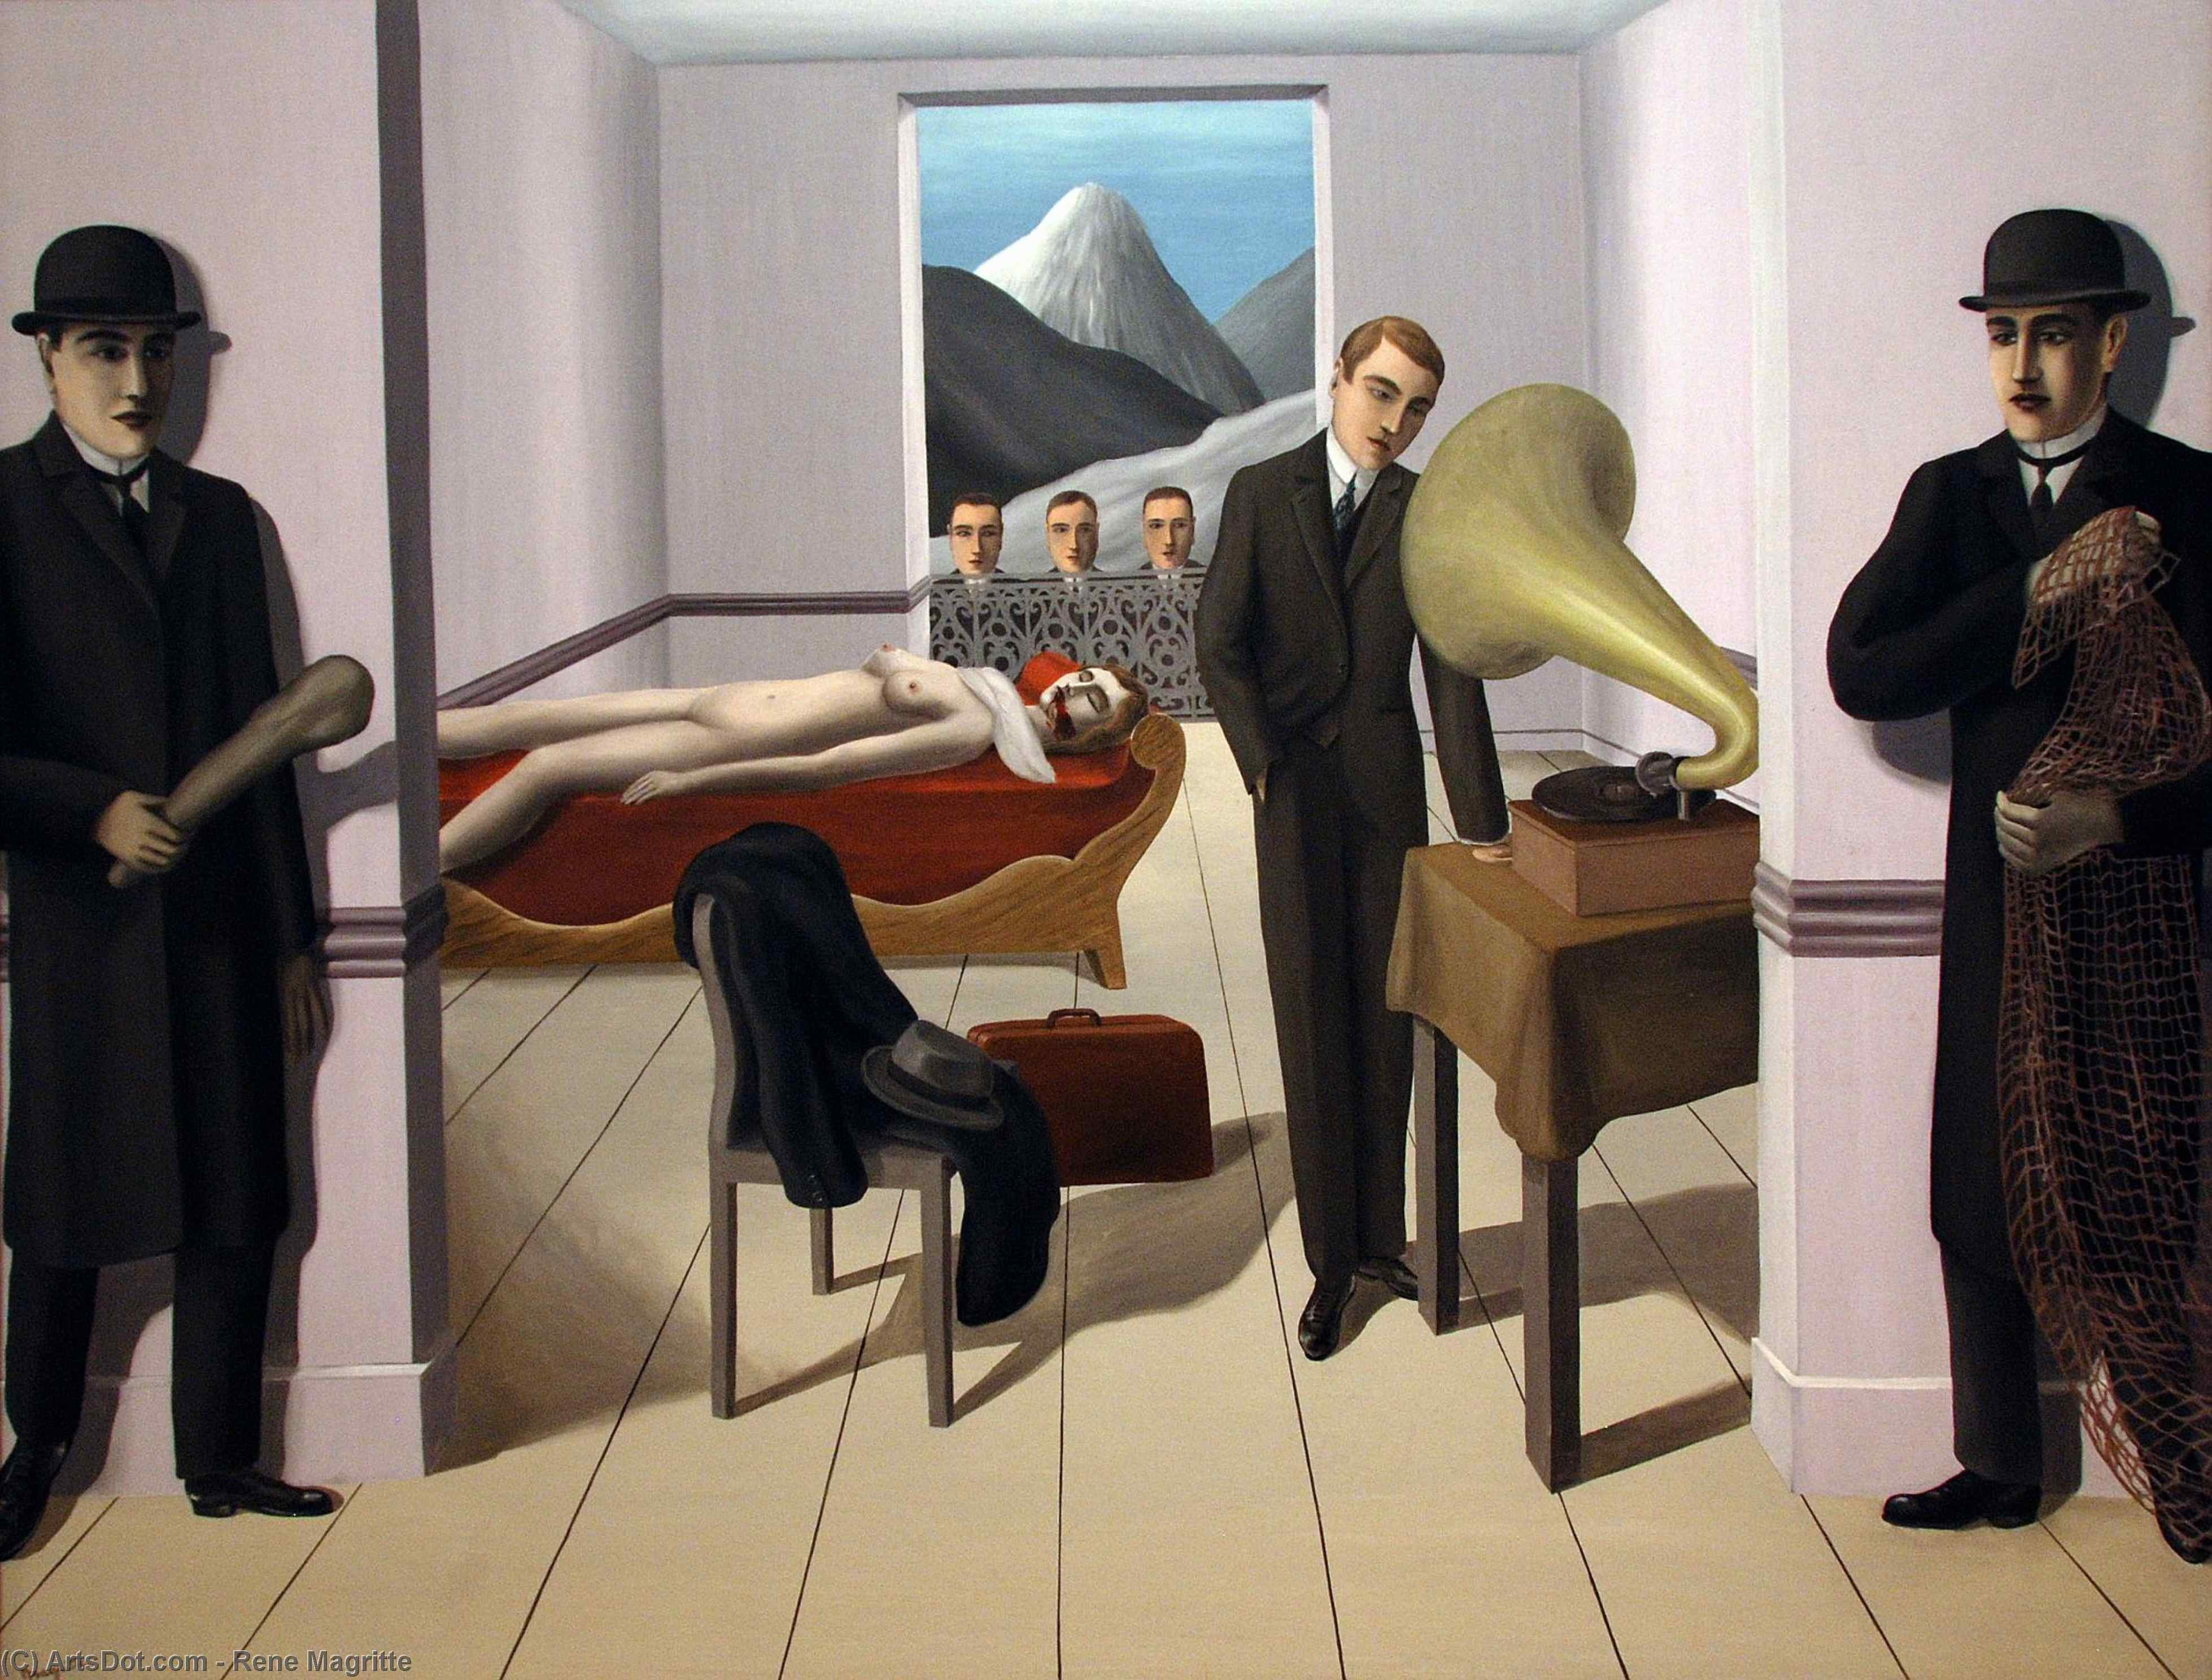 Wikioo.org - The Encyclopedia of Fine Arts - Painting, Artwork by Rene Magritte - The Menaced Assassin